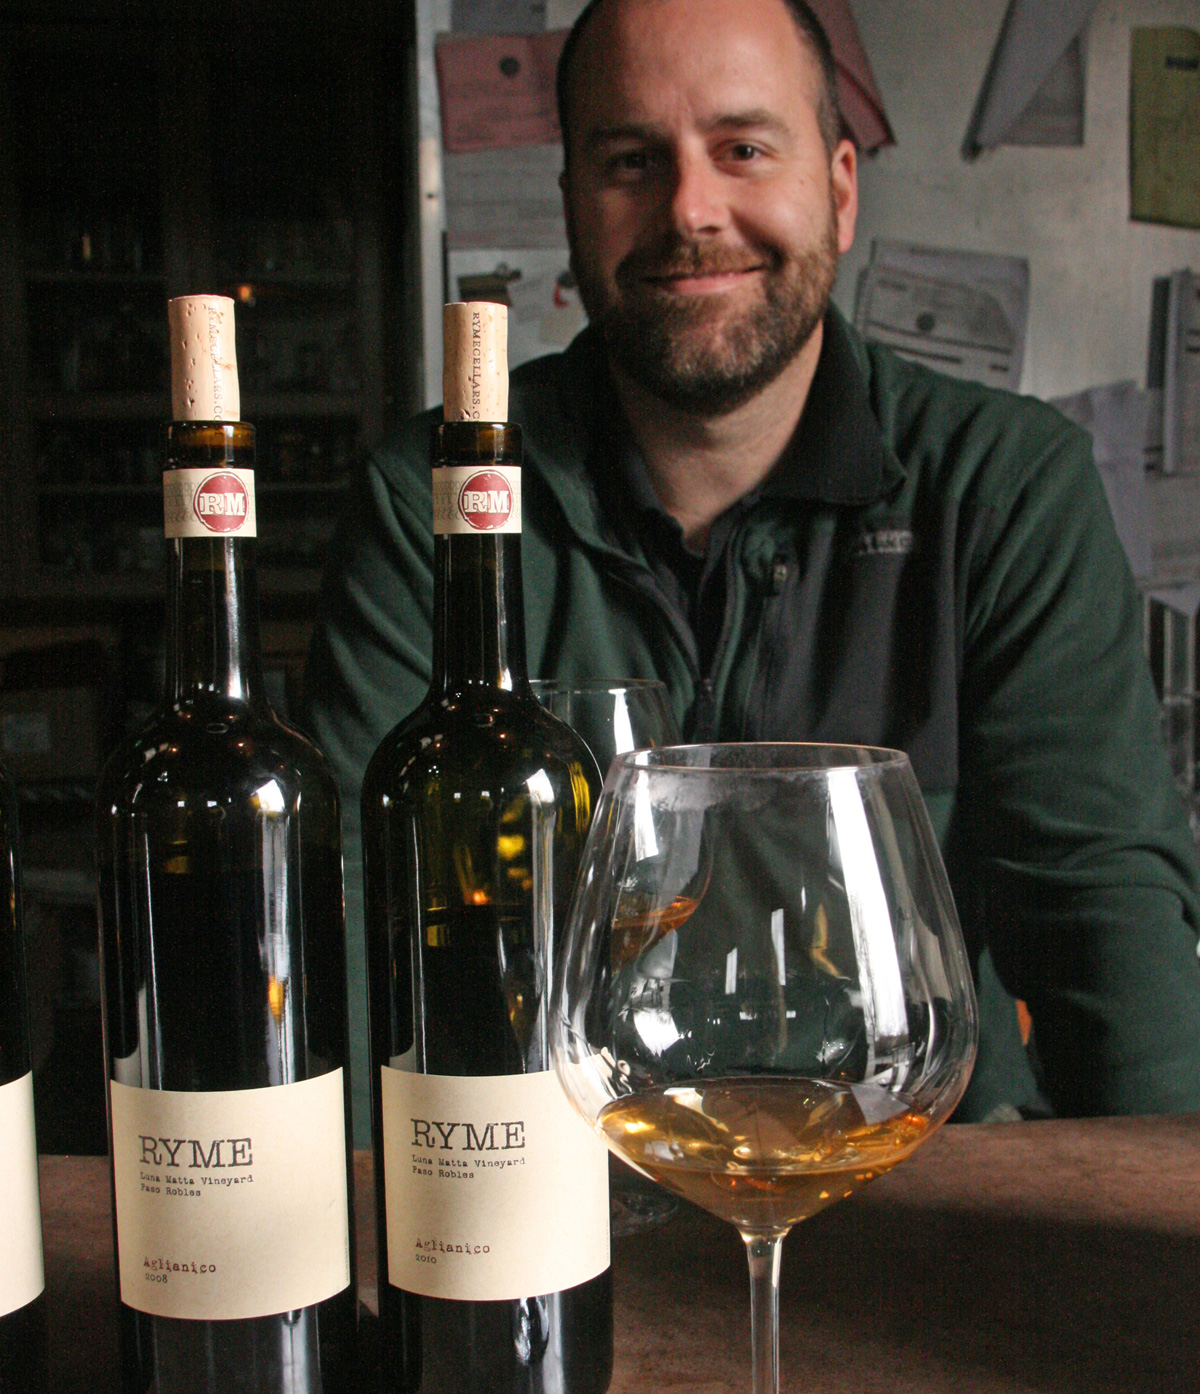 Ryan Glaab, who makes His & Hers Vermentino in Sonoma